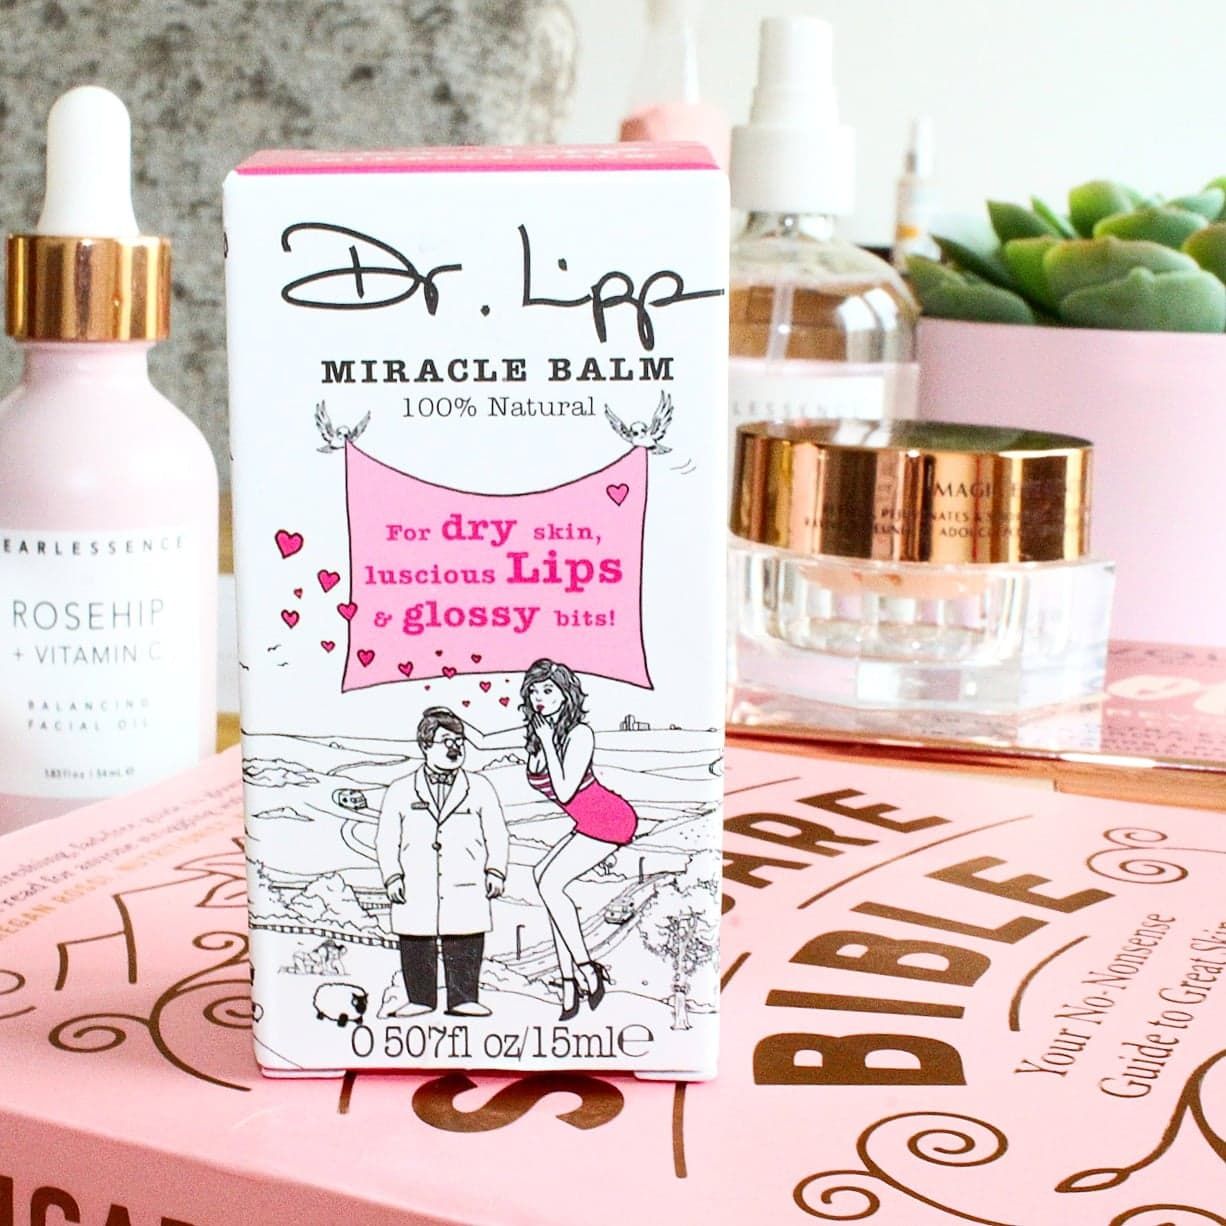 Dr. Lipp's Original Nipple Balm for Dry Skin, Luscious Lips & Glossy Bits